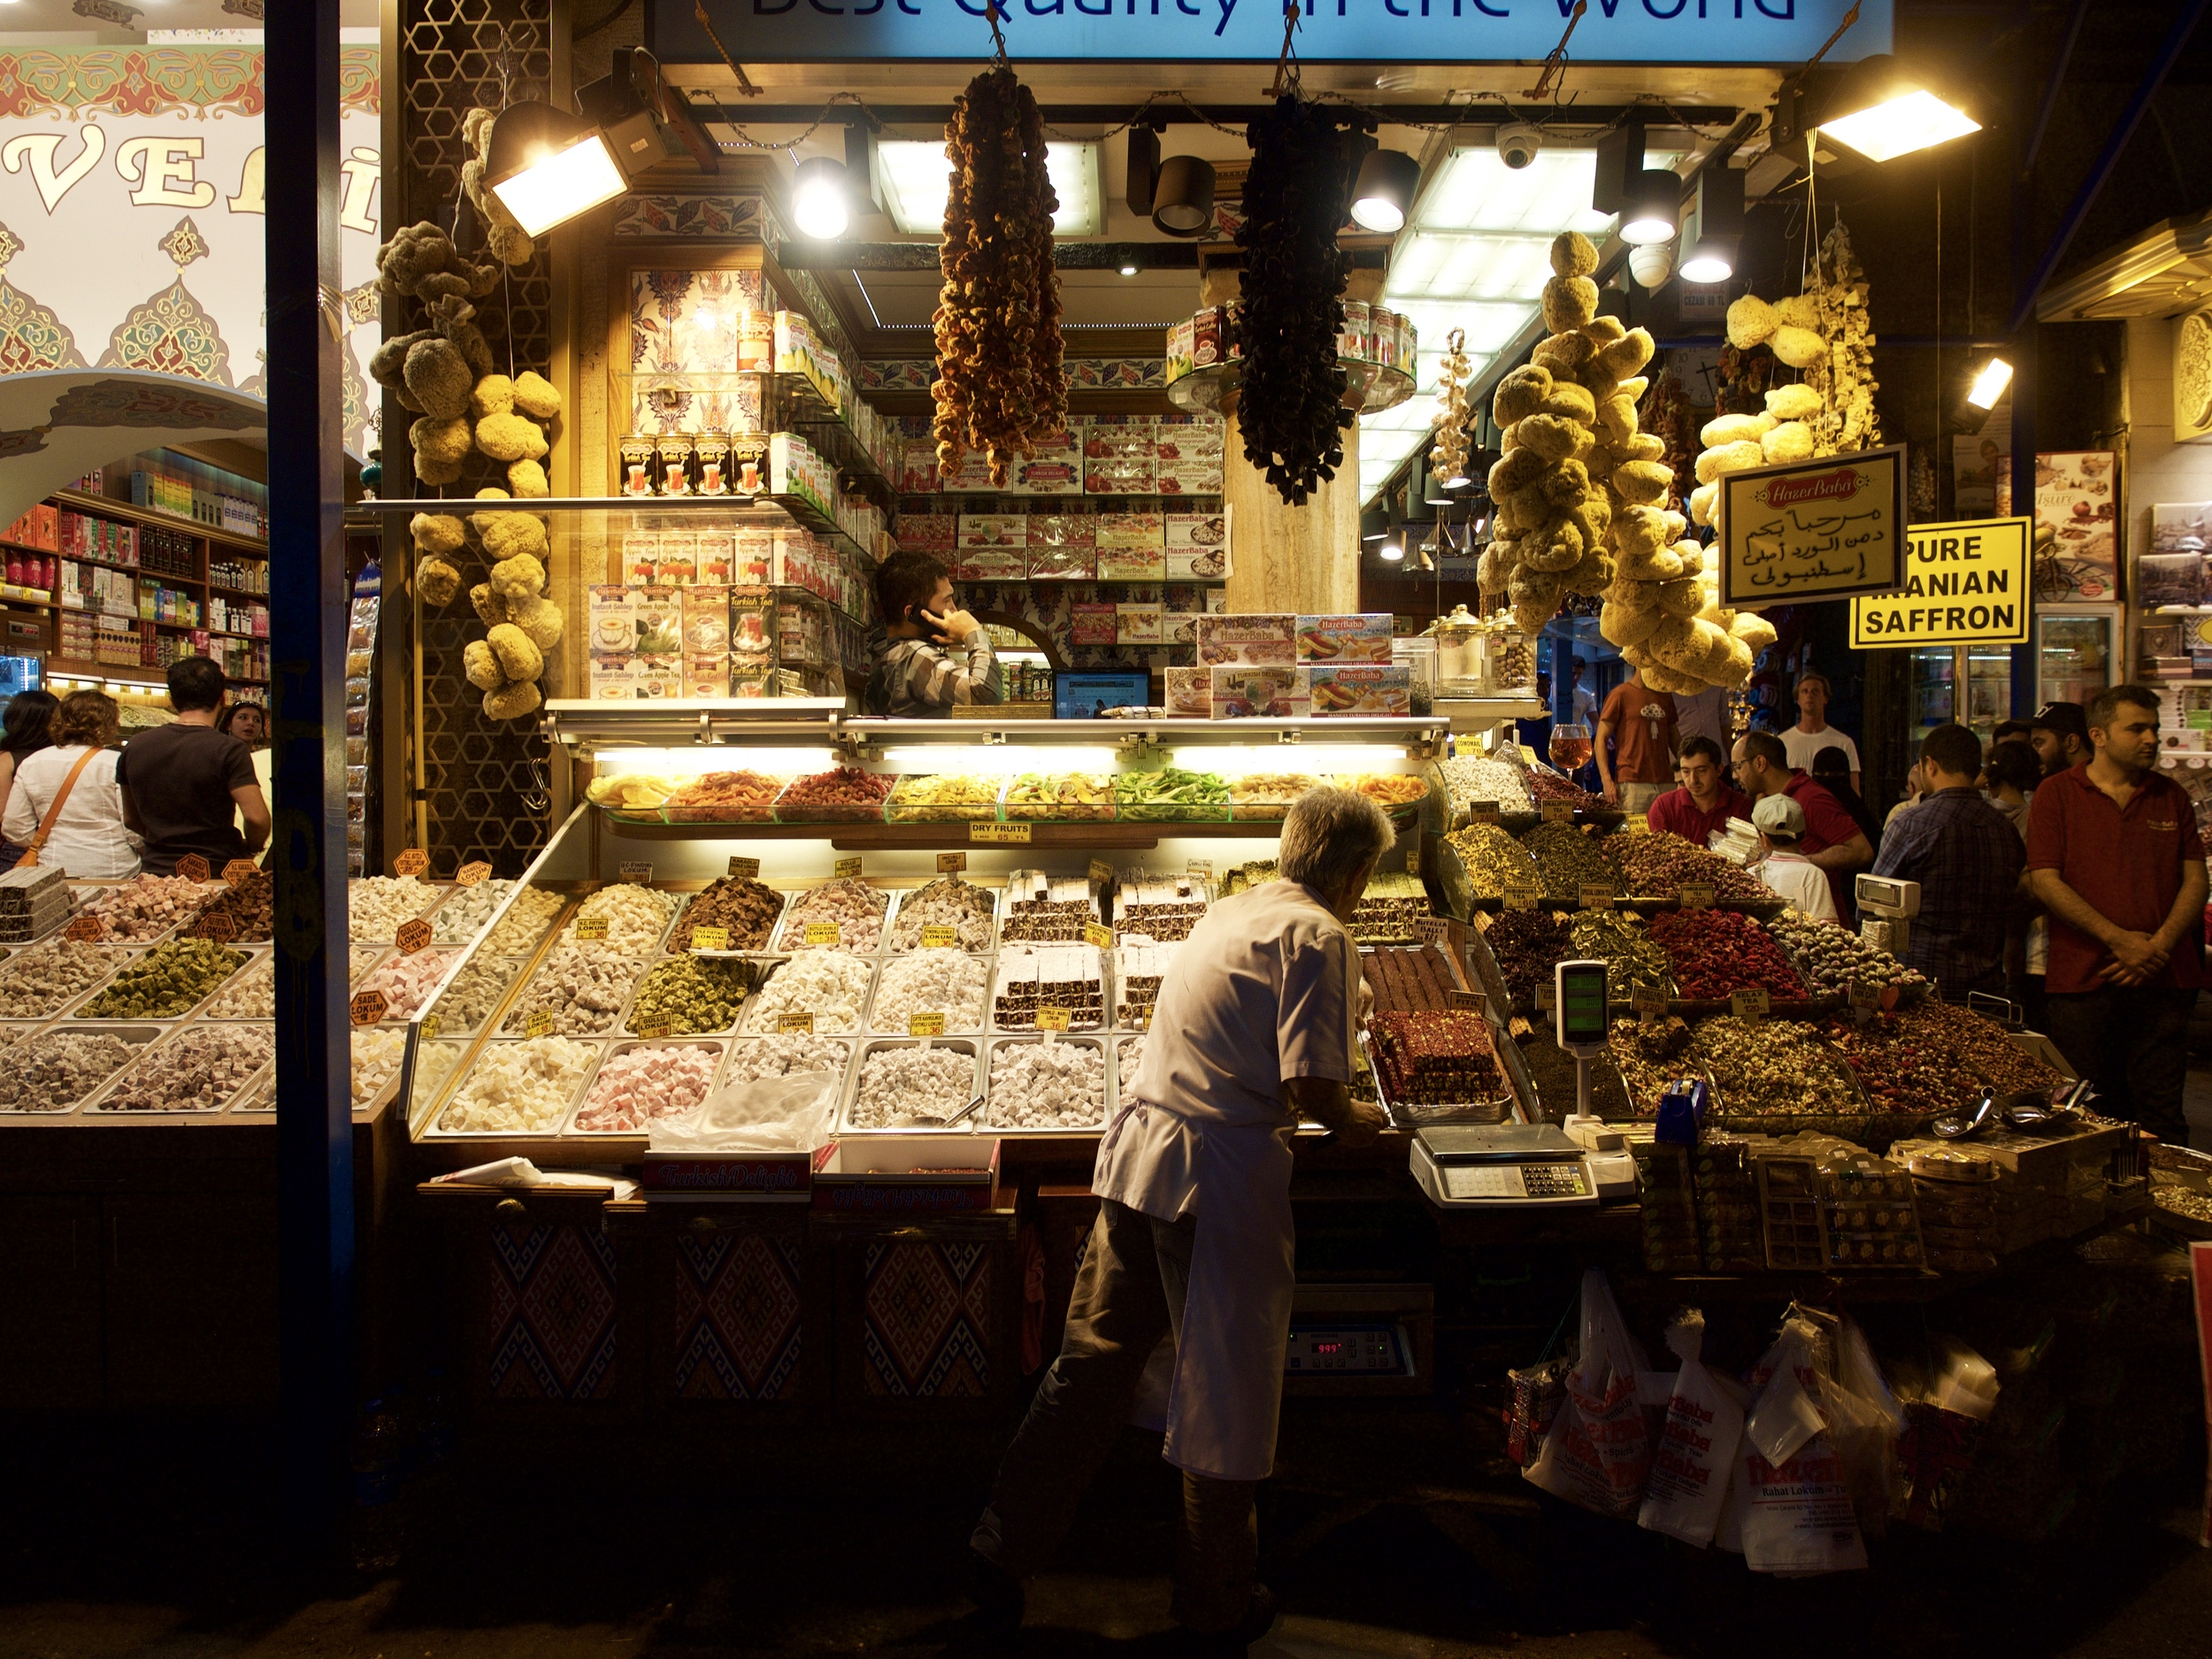 The Spice Market has everything you could ever want.